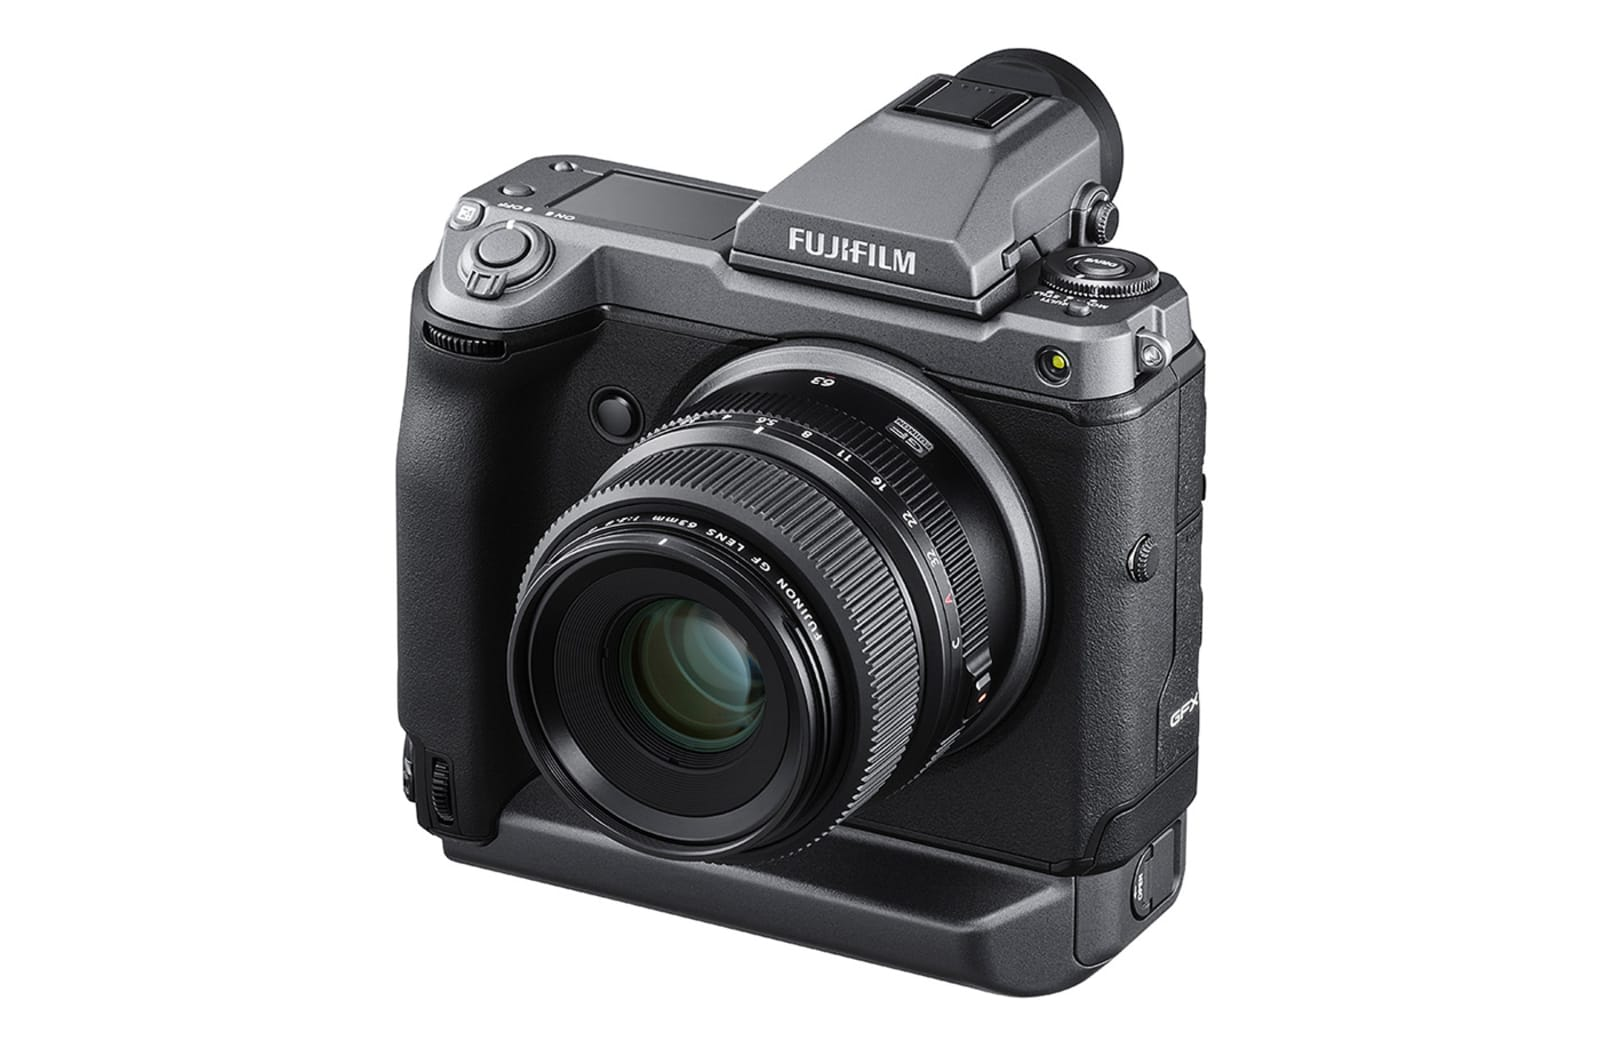 Fujifilm launches the groundbreaking 102-megapixel